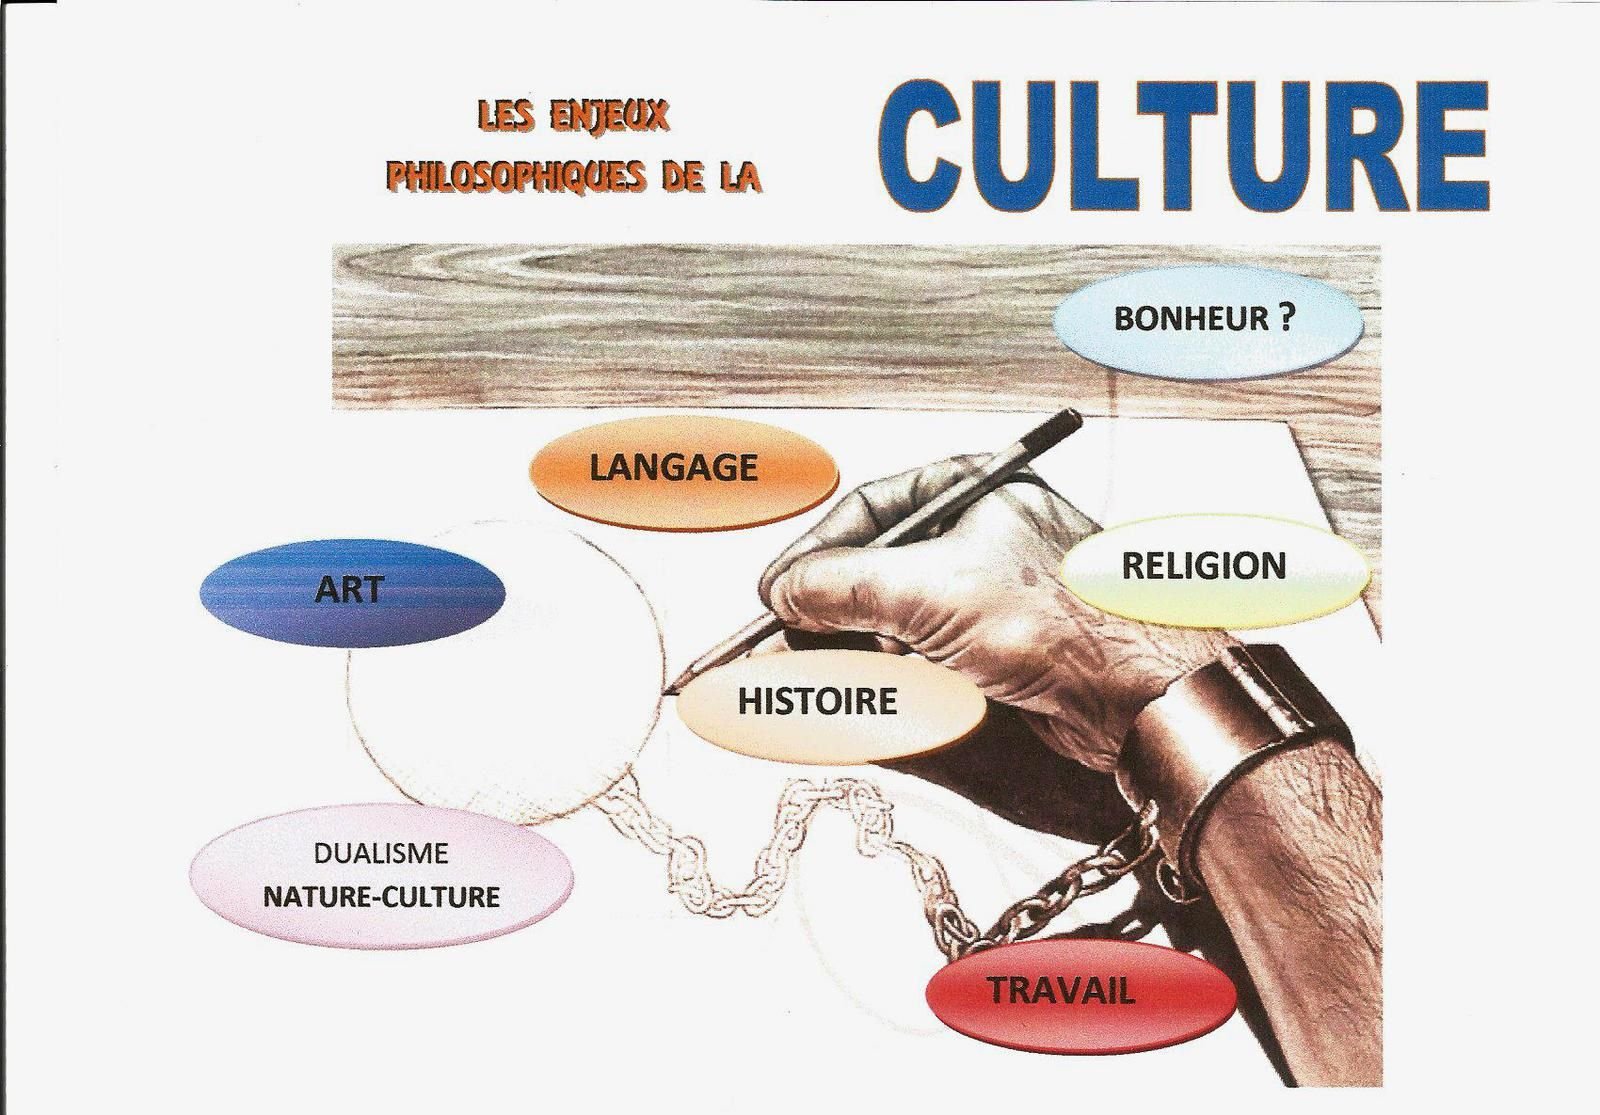 Dissertation Sur La Culture Philosophie